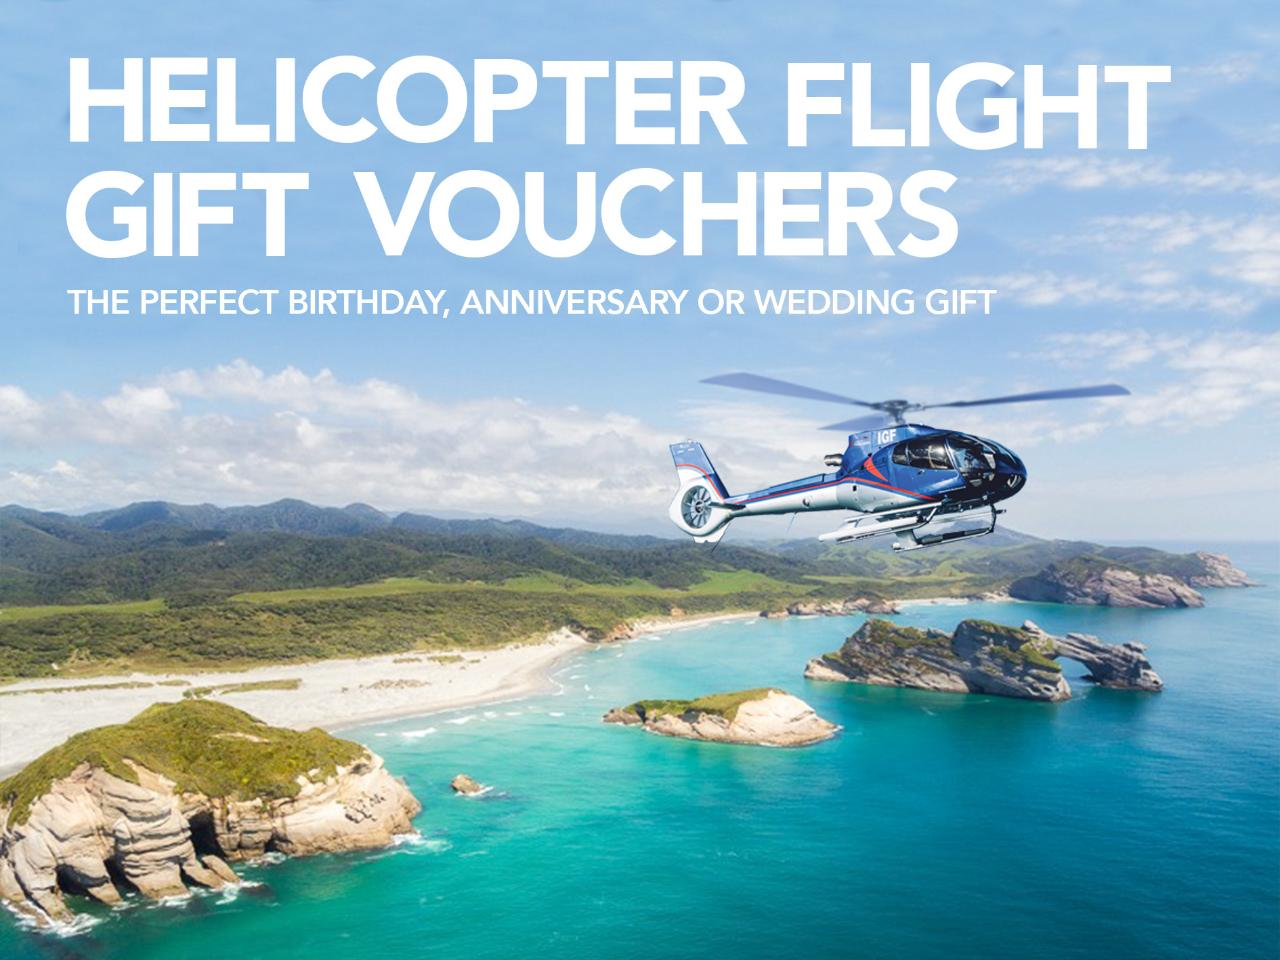 Nelson Helicopter Gift Voucher